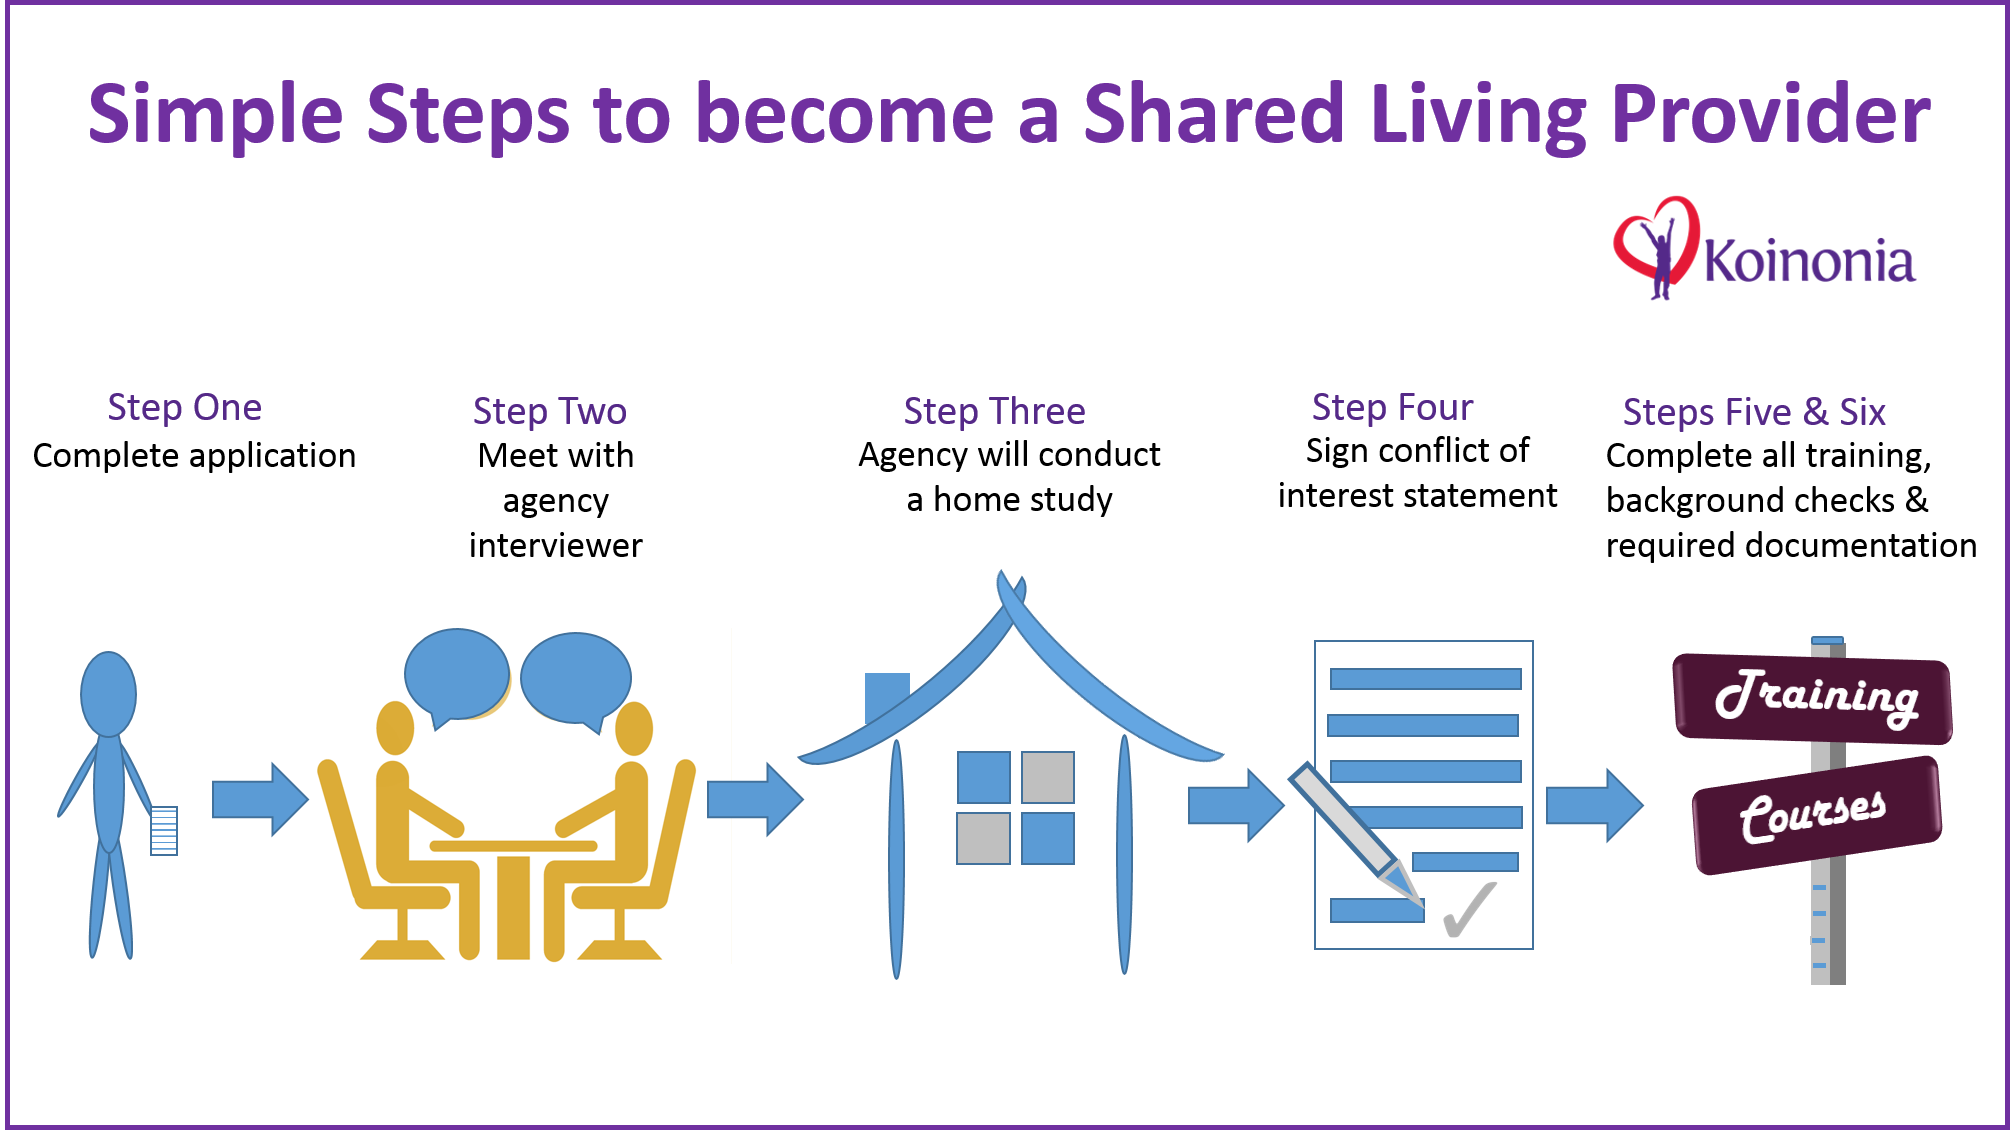 Becoming a Koinonia Shared Living Provider can be completed in 6 easy steps: Complete the application, meet with us, conduct a home study, sign a conflict of interest statement, and complete all training, background checks, and necessary documentation.